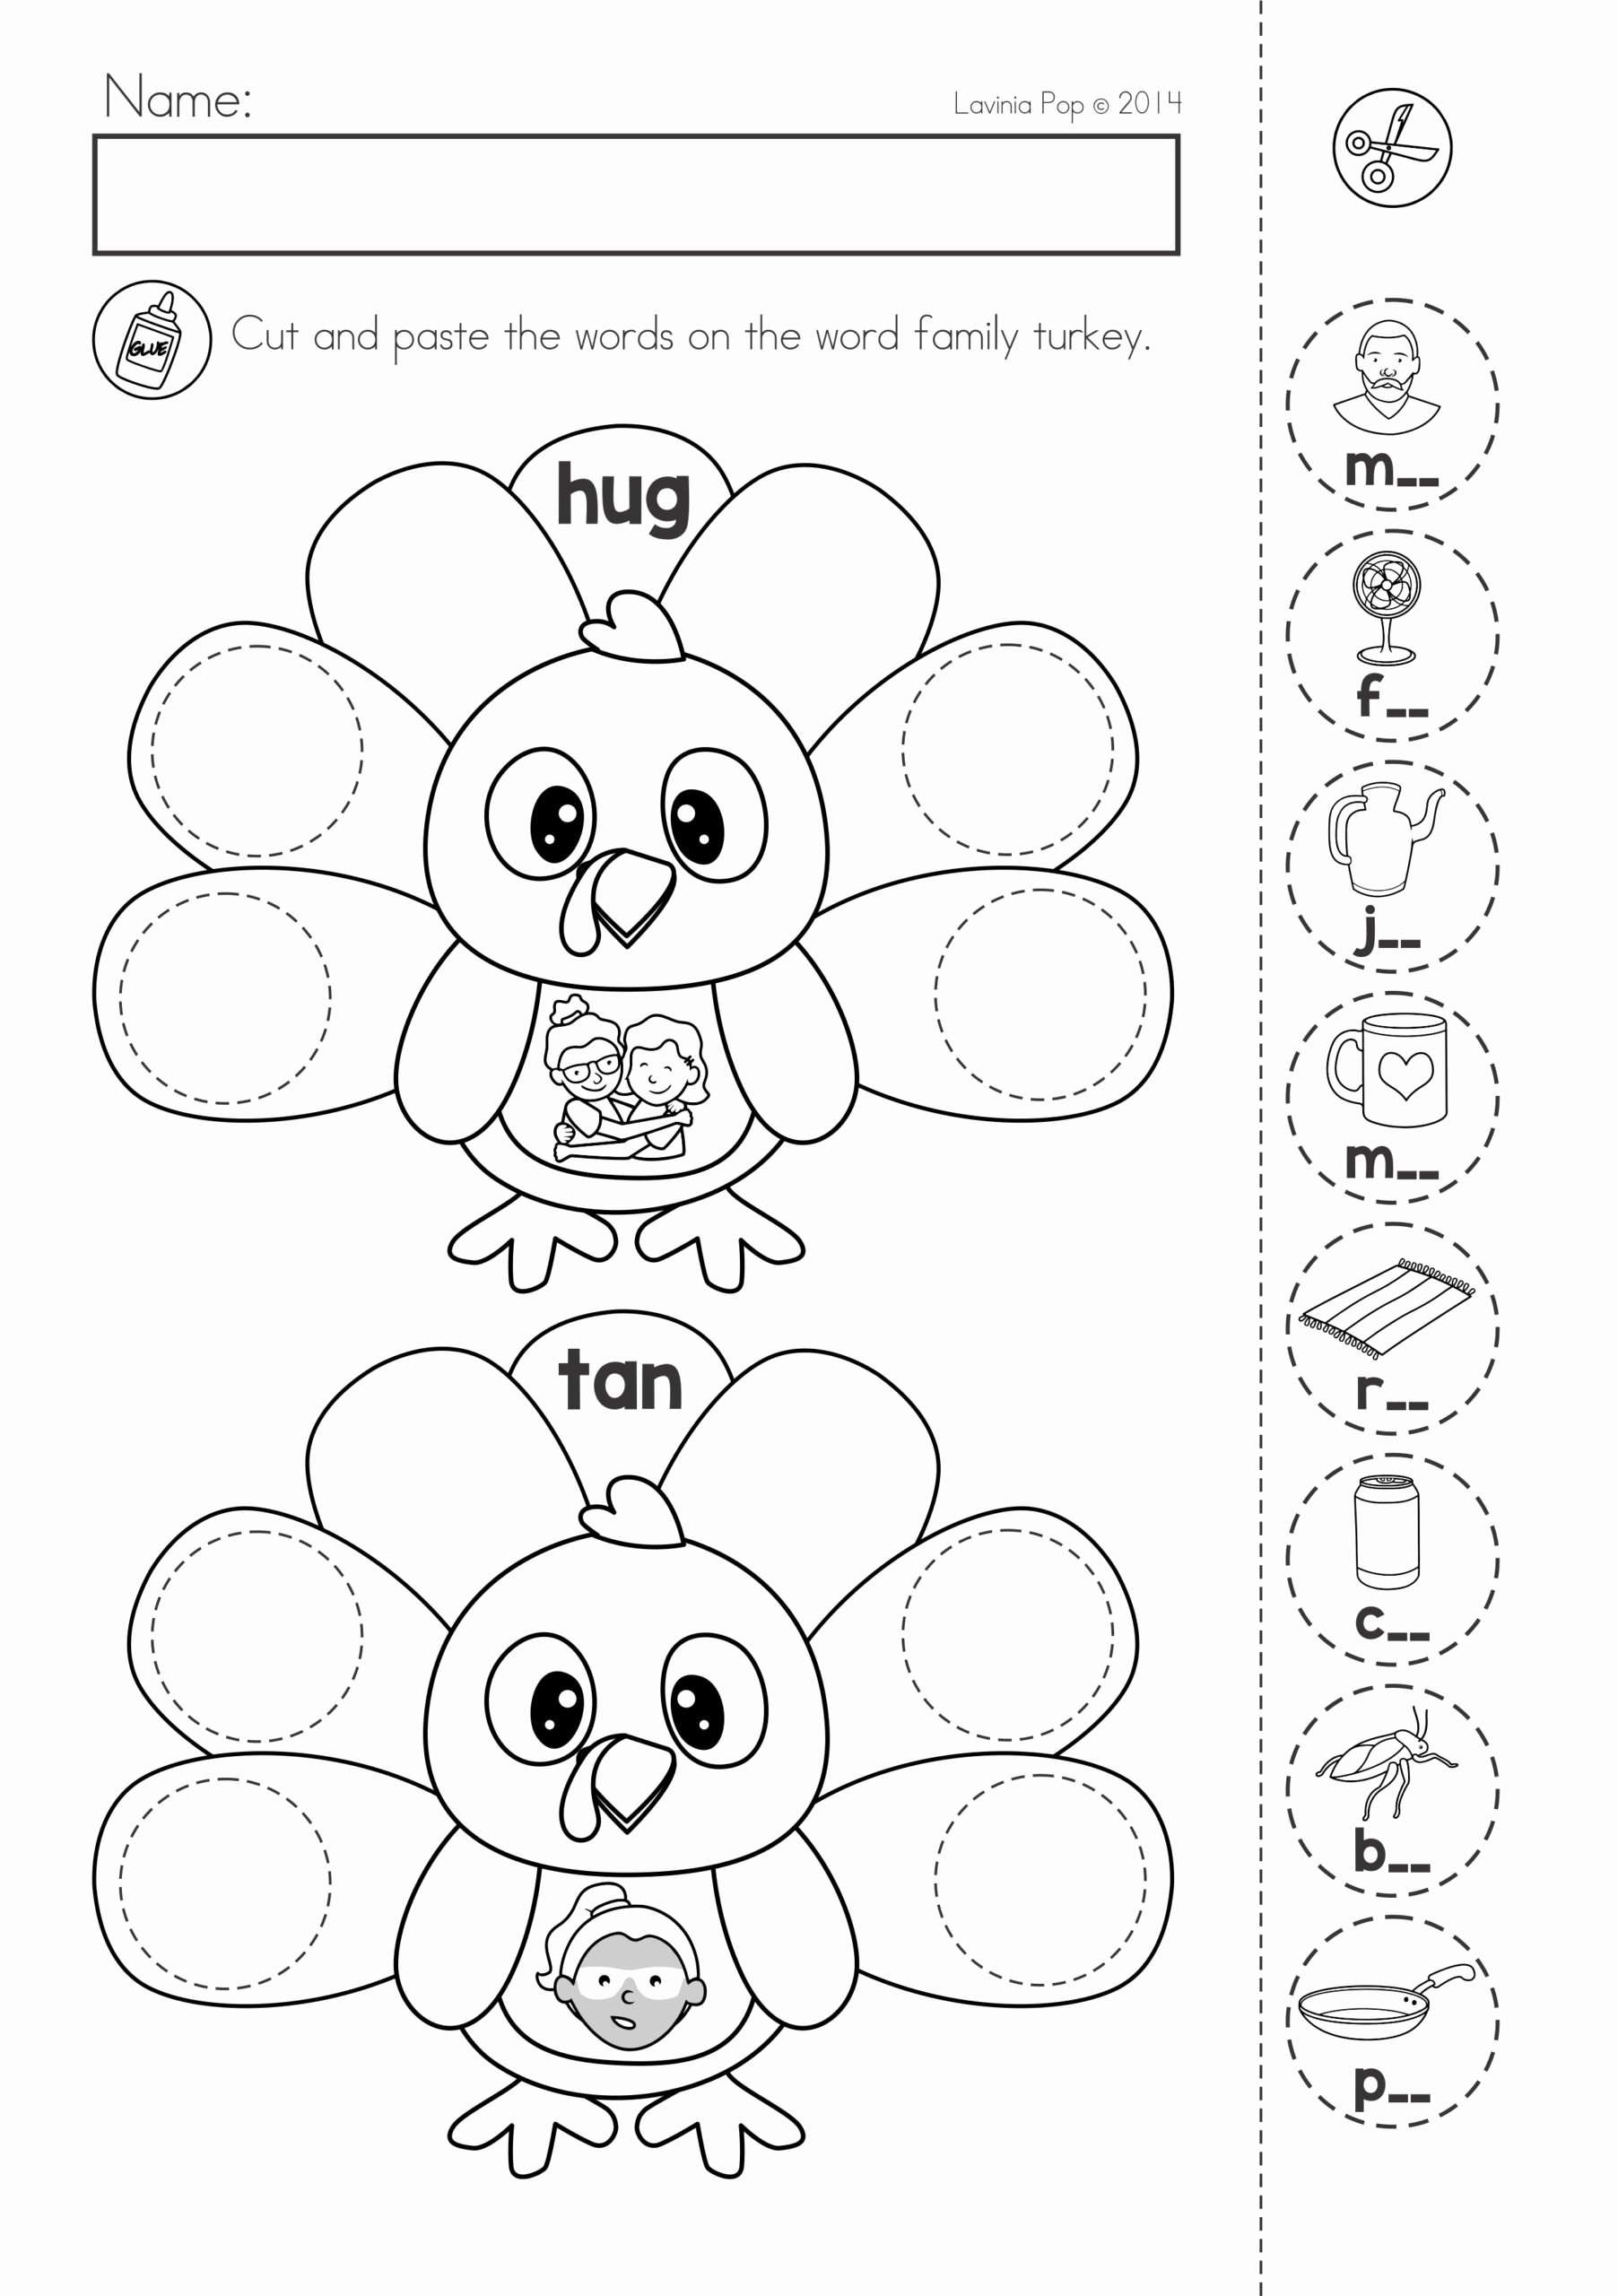 Pre K Printable Cutting Worksheets for Preschoolers Inspirational Free Preschool Printables Cut and Paste Worksheet Four Line